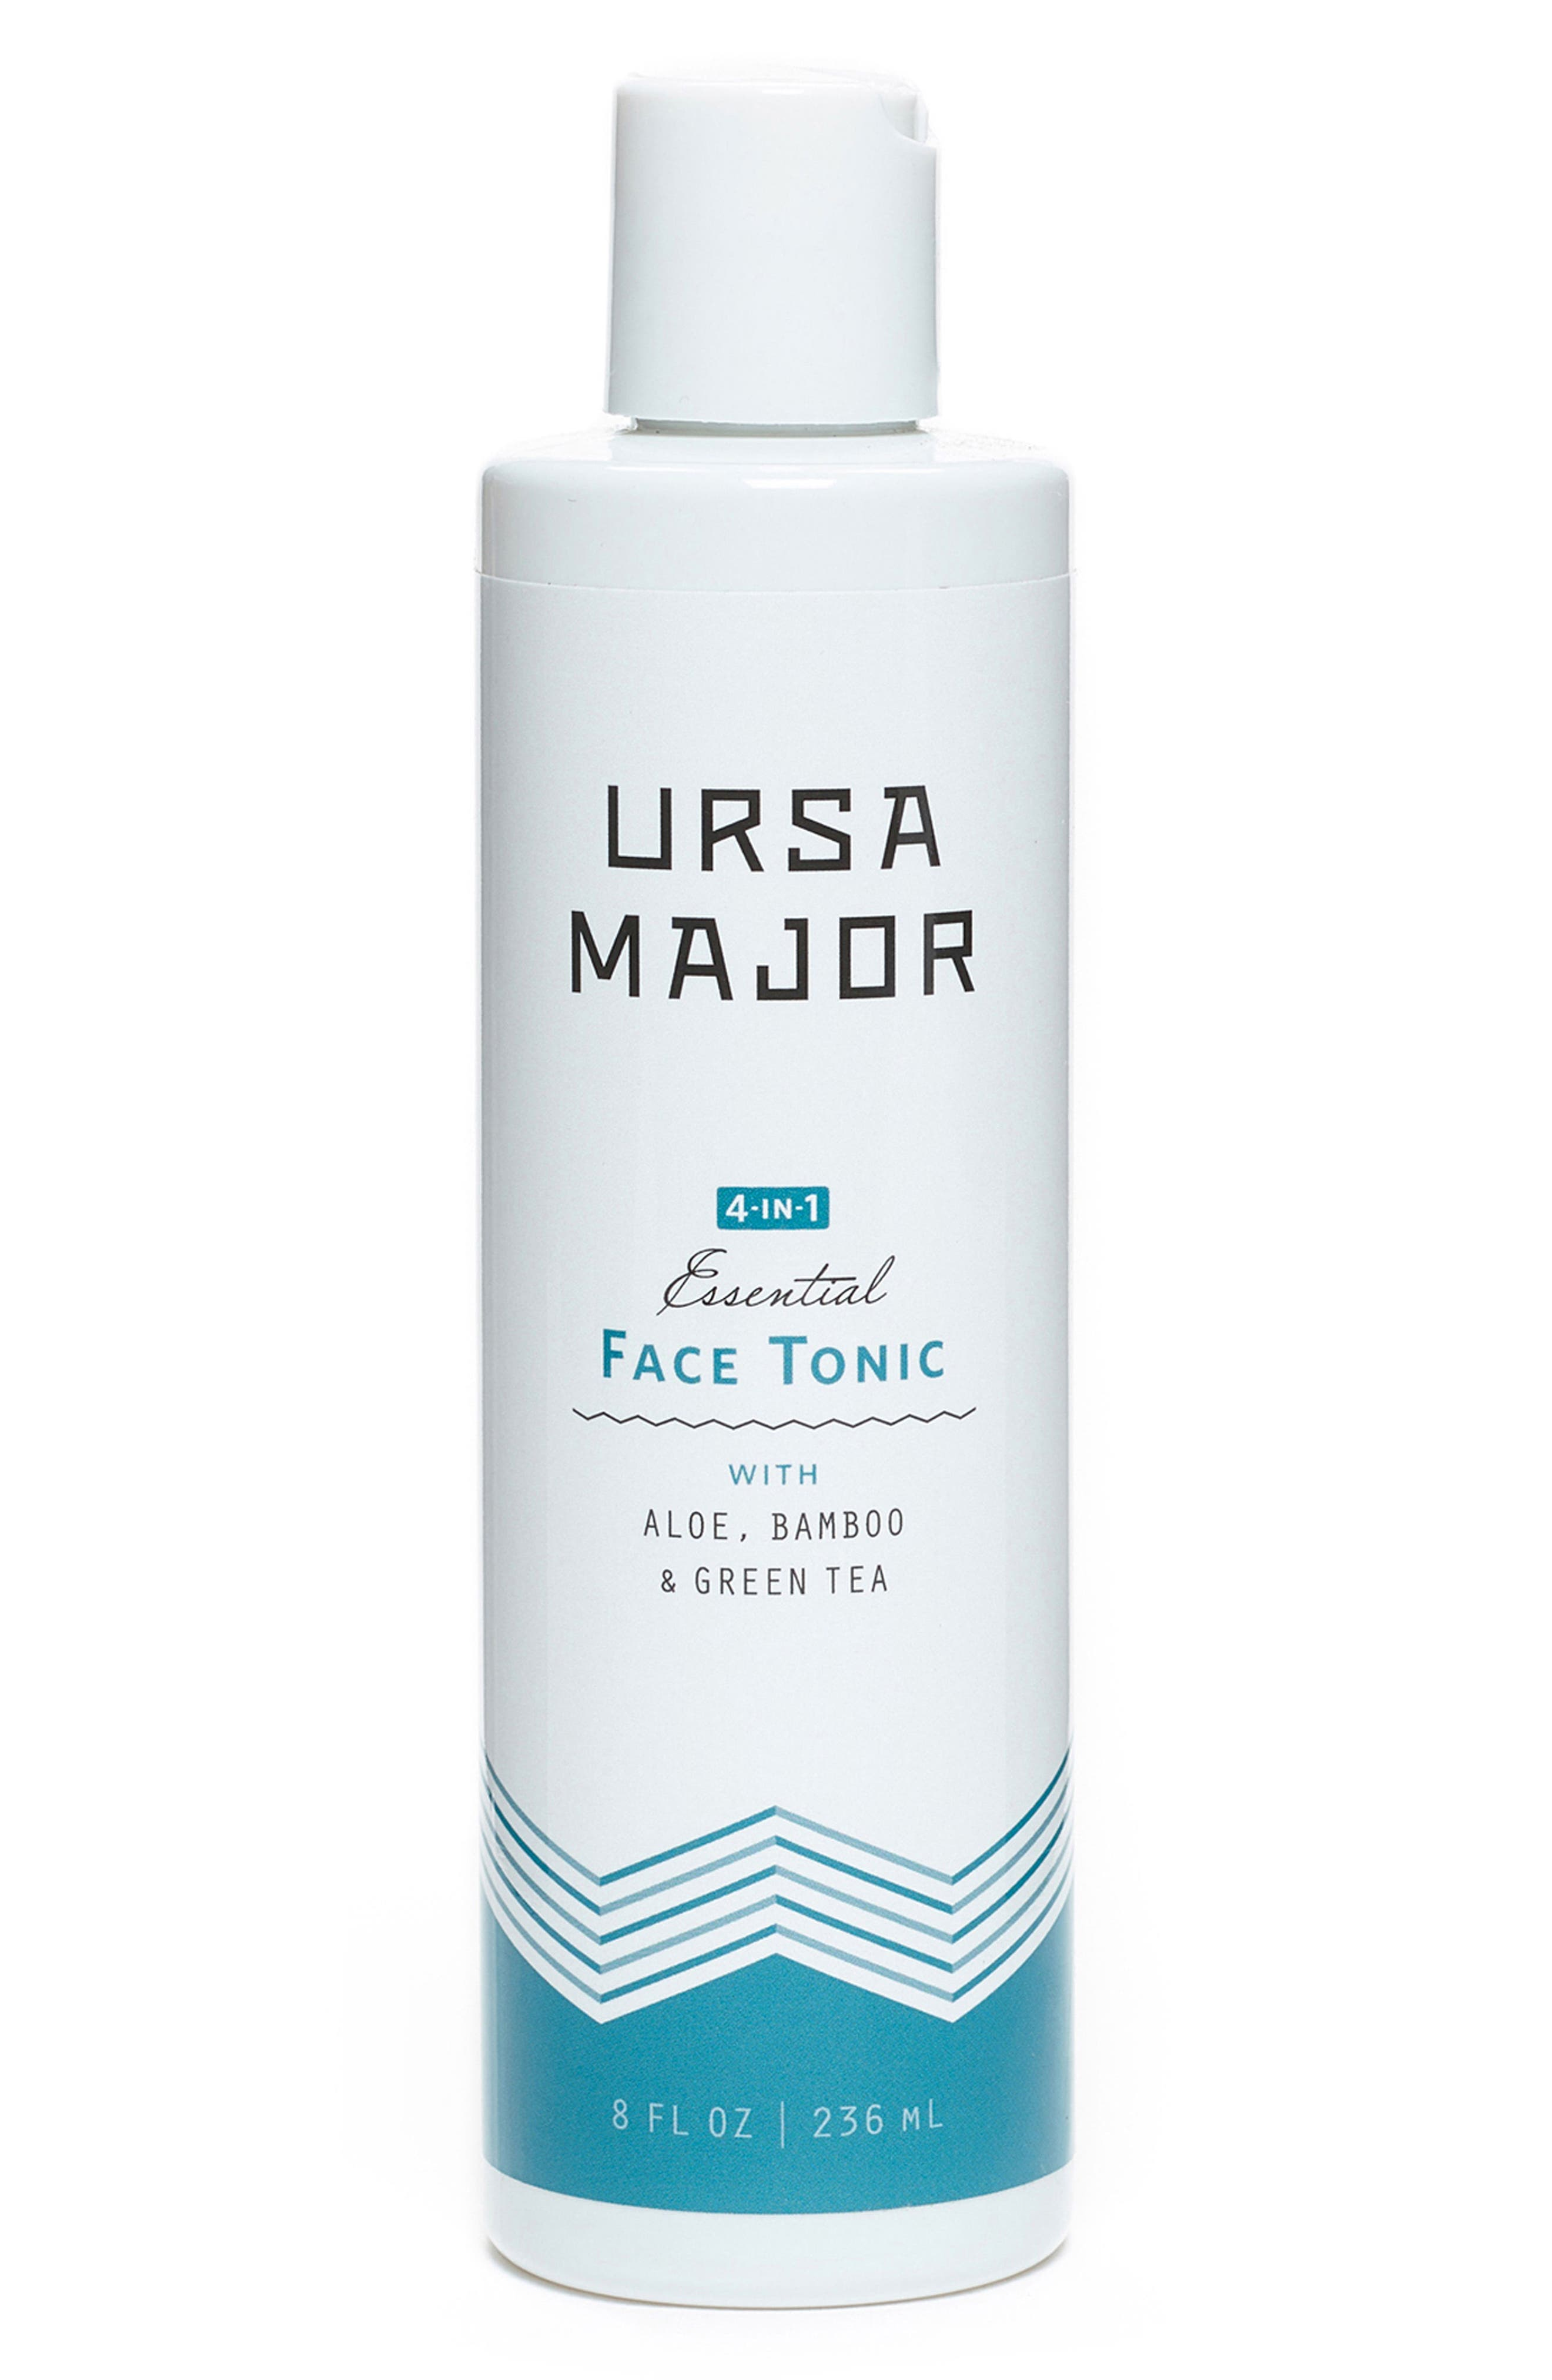 URSA MAJOR,                             4-in-1 Essential Face Tonic,                             Main thumbnail 1, color,                             NO COLOR